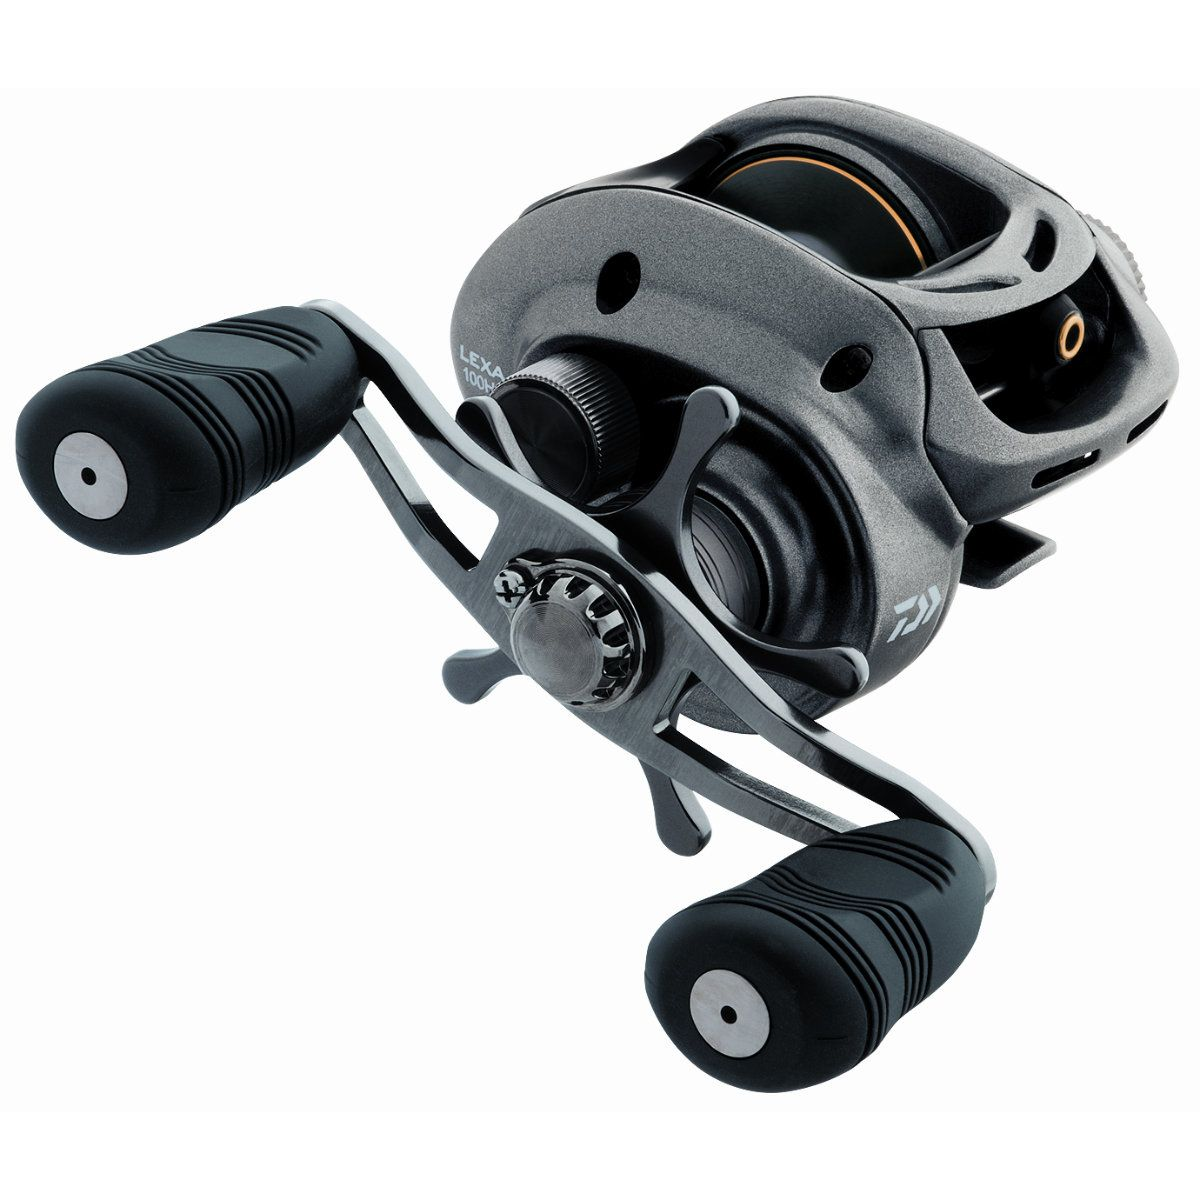 Baitcasting multipliers glasgow angling centre for Fishing reels baitcaster